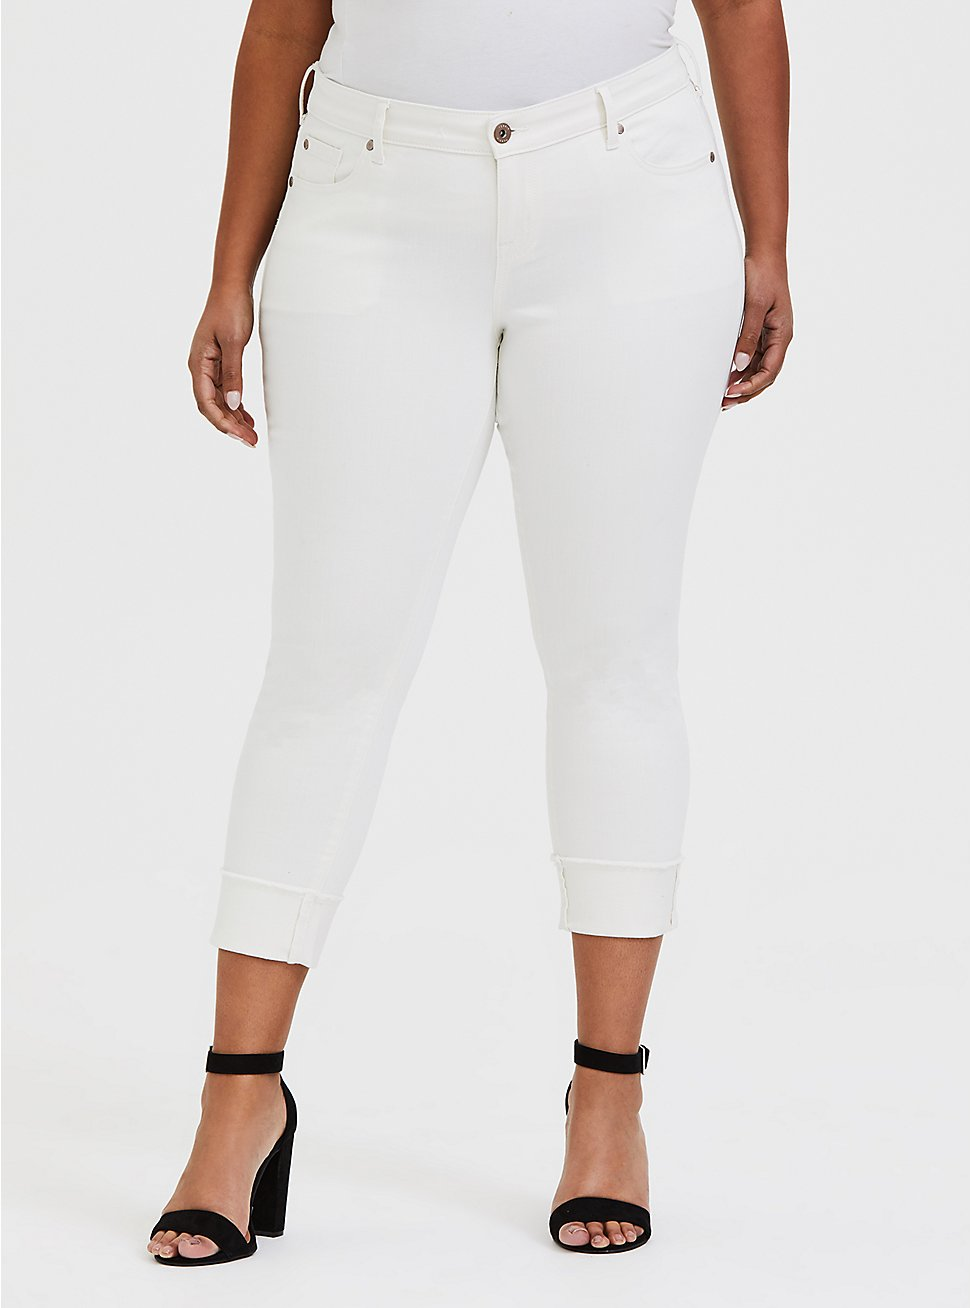 Crop Boyfriend Jean - Vintage Stretch White, FRENCH VANILLA, hi-res